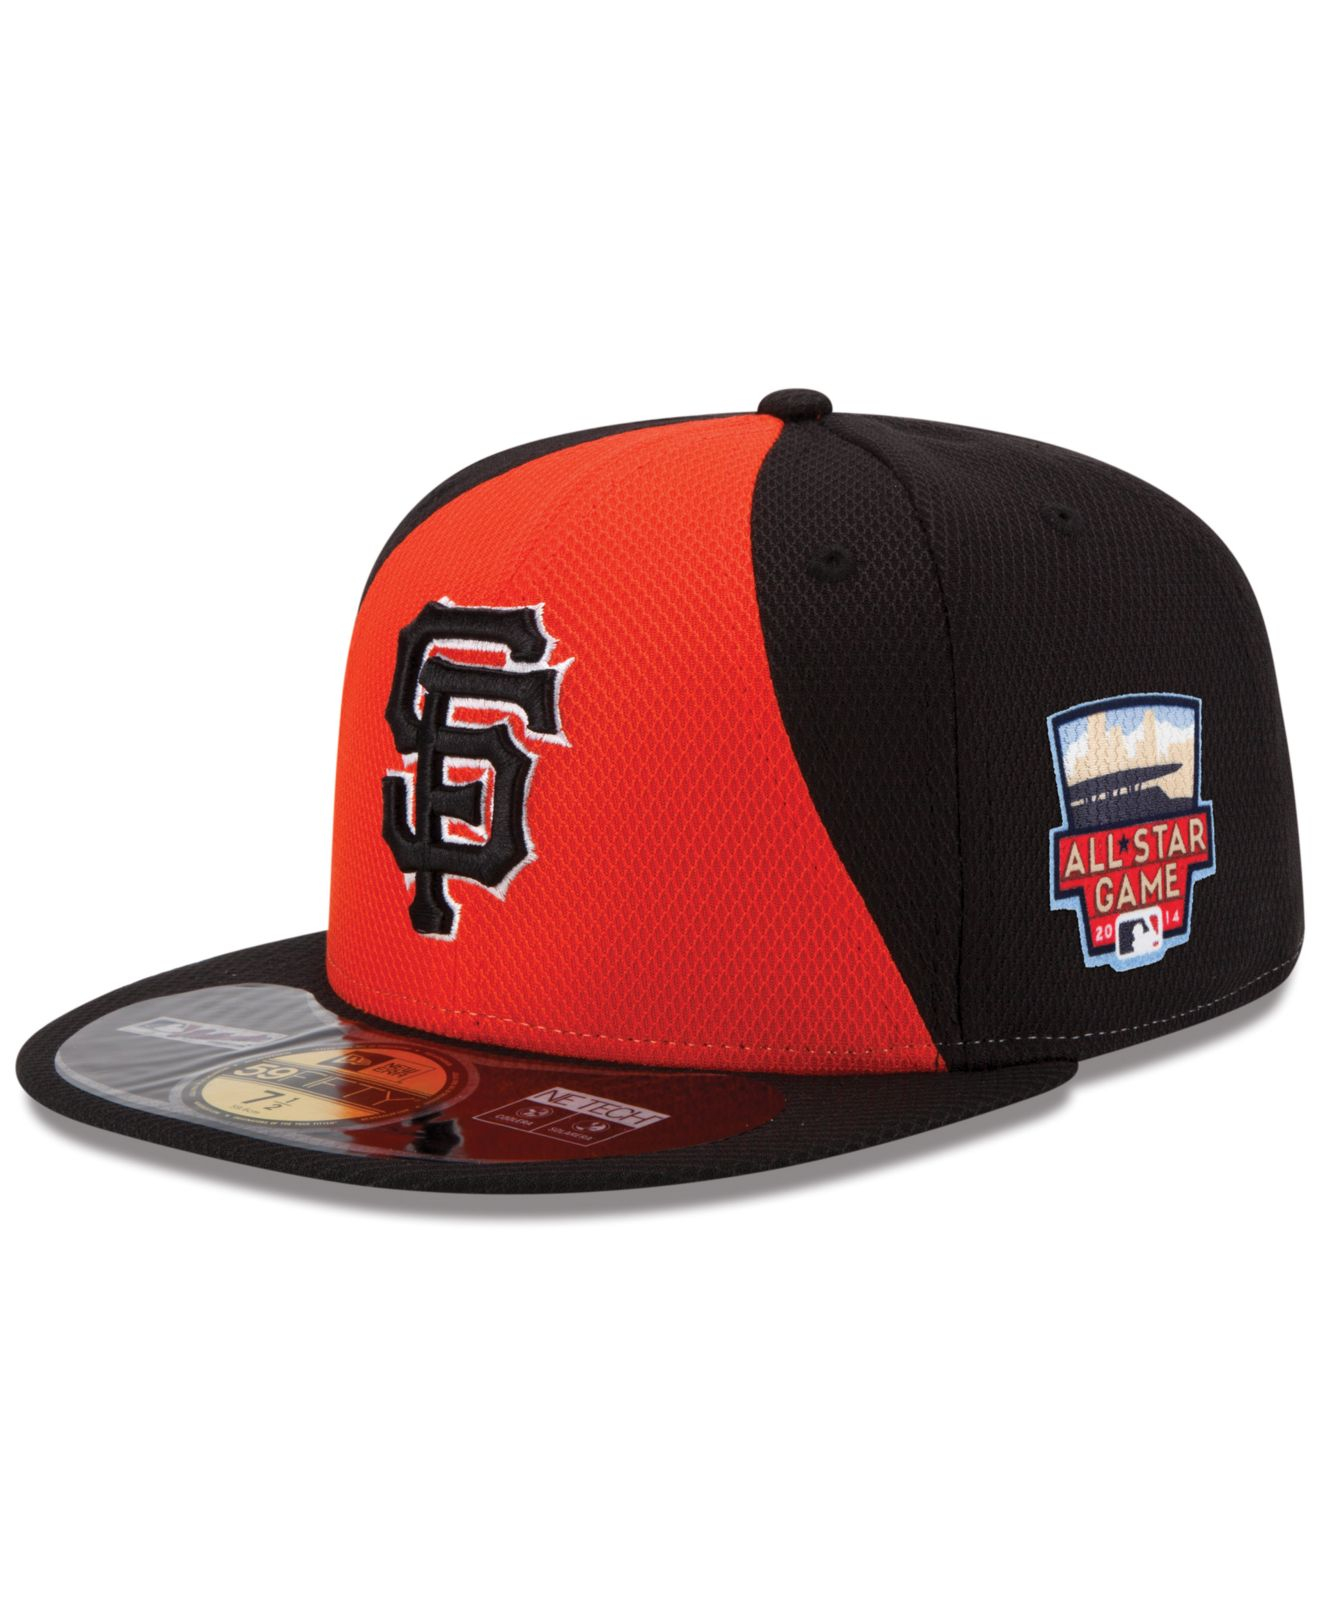 98+ Are These The 2015 Mlb All Star Game Official Hats Bleacher ... 588e64768e44